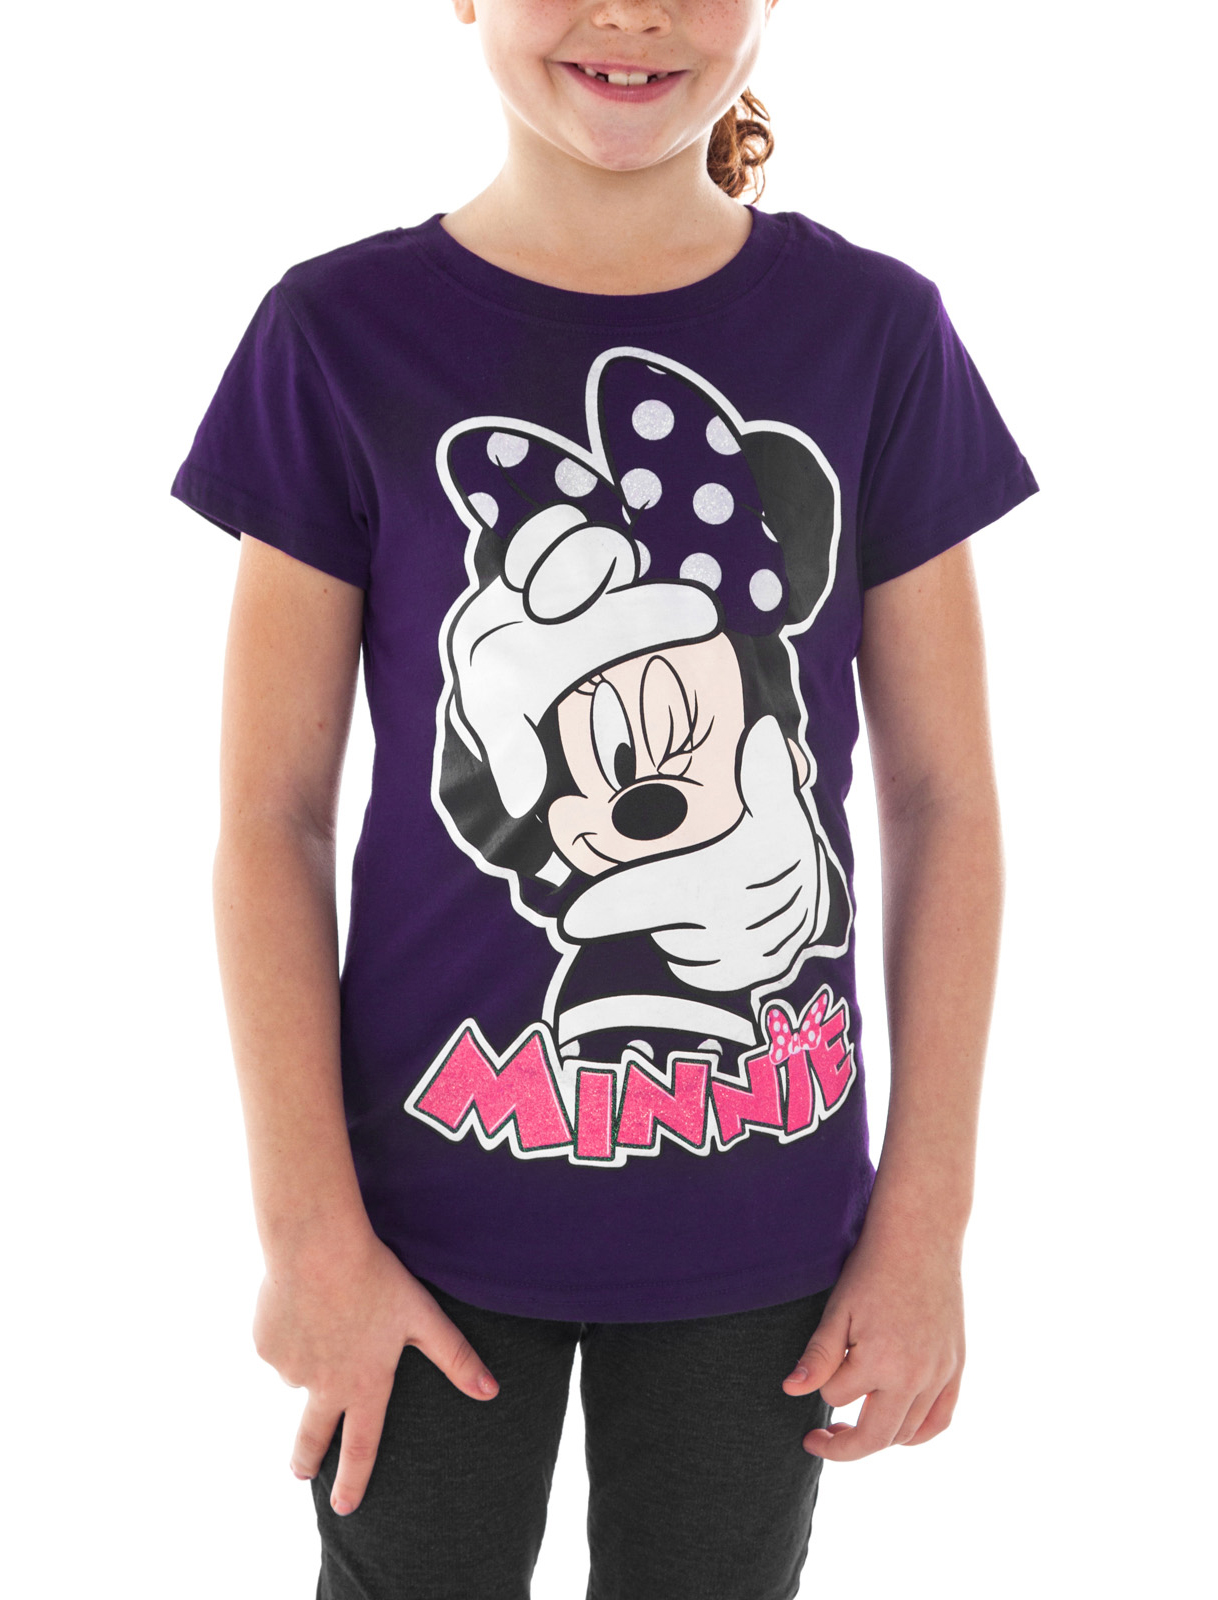 Girls Minnie Mouse Photogenic Short Sleeve T-Shirt Purple